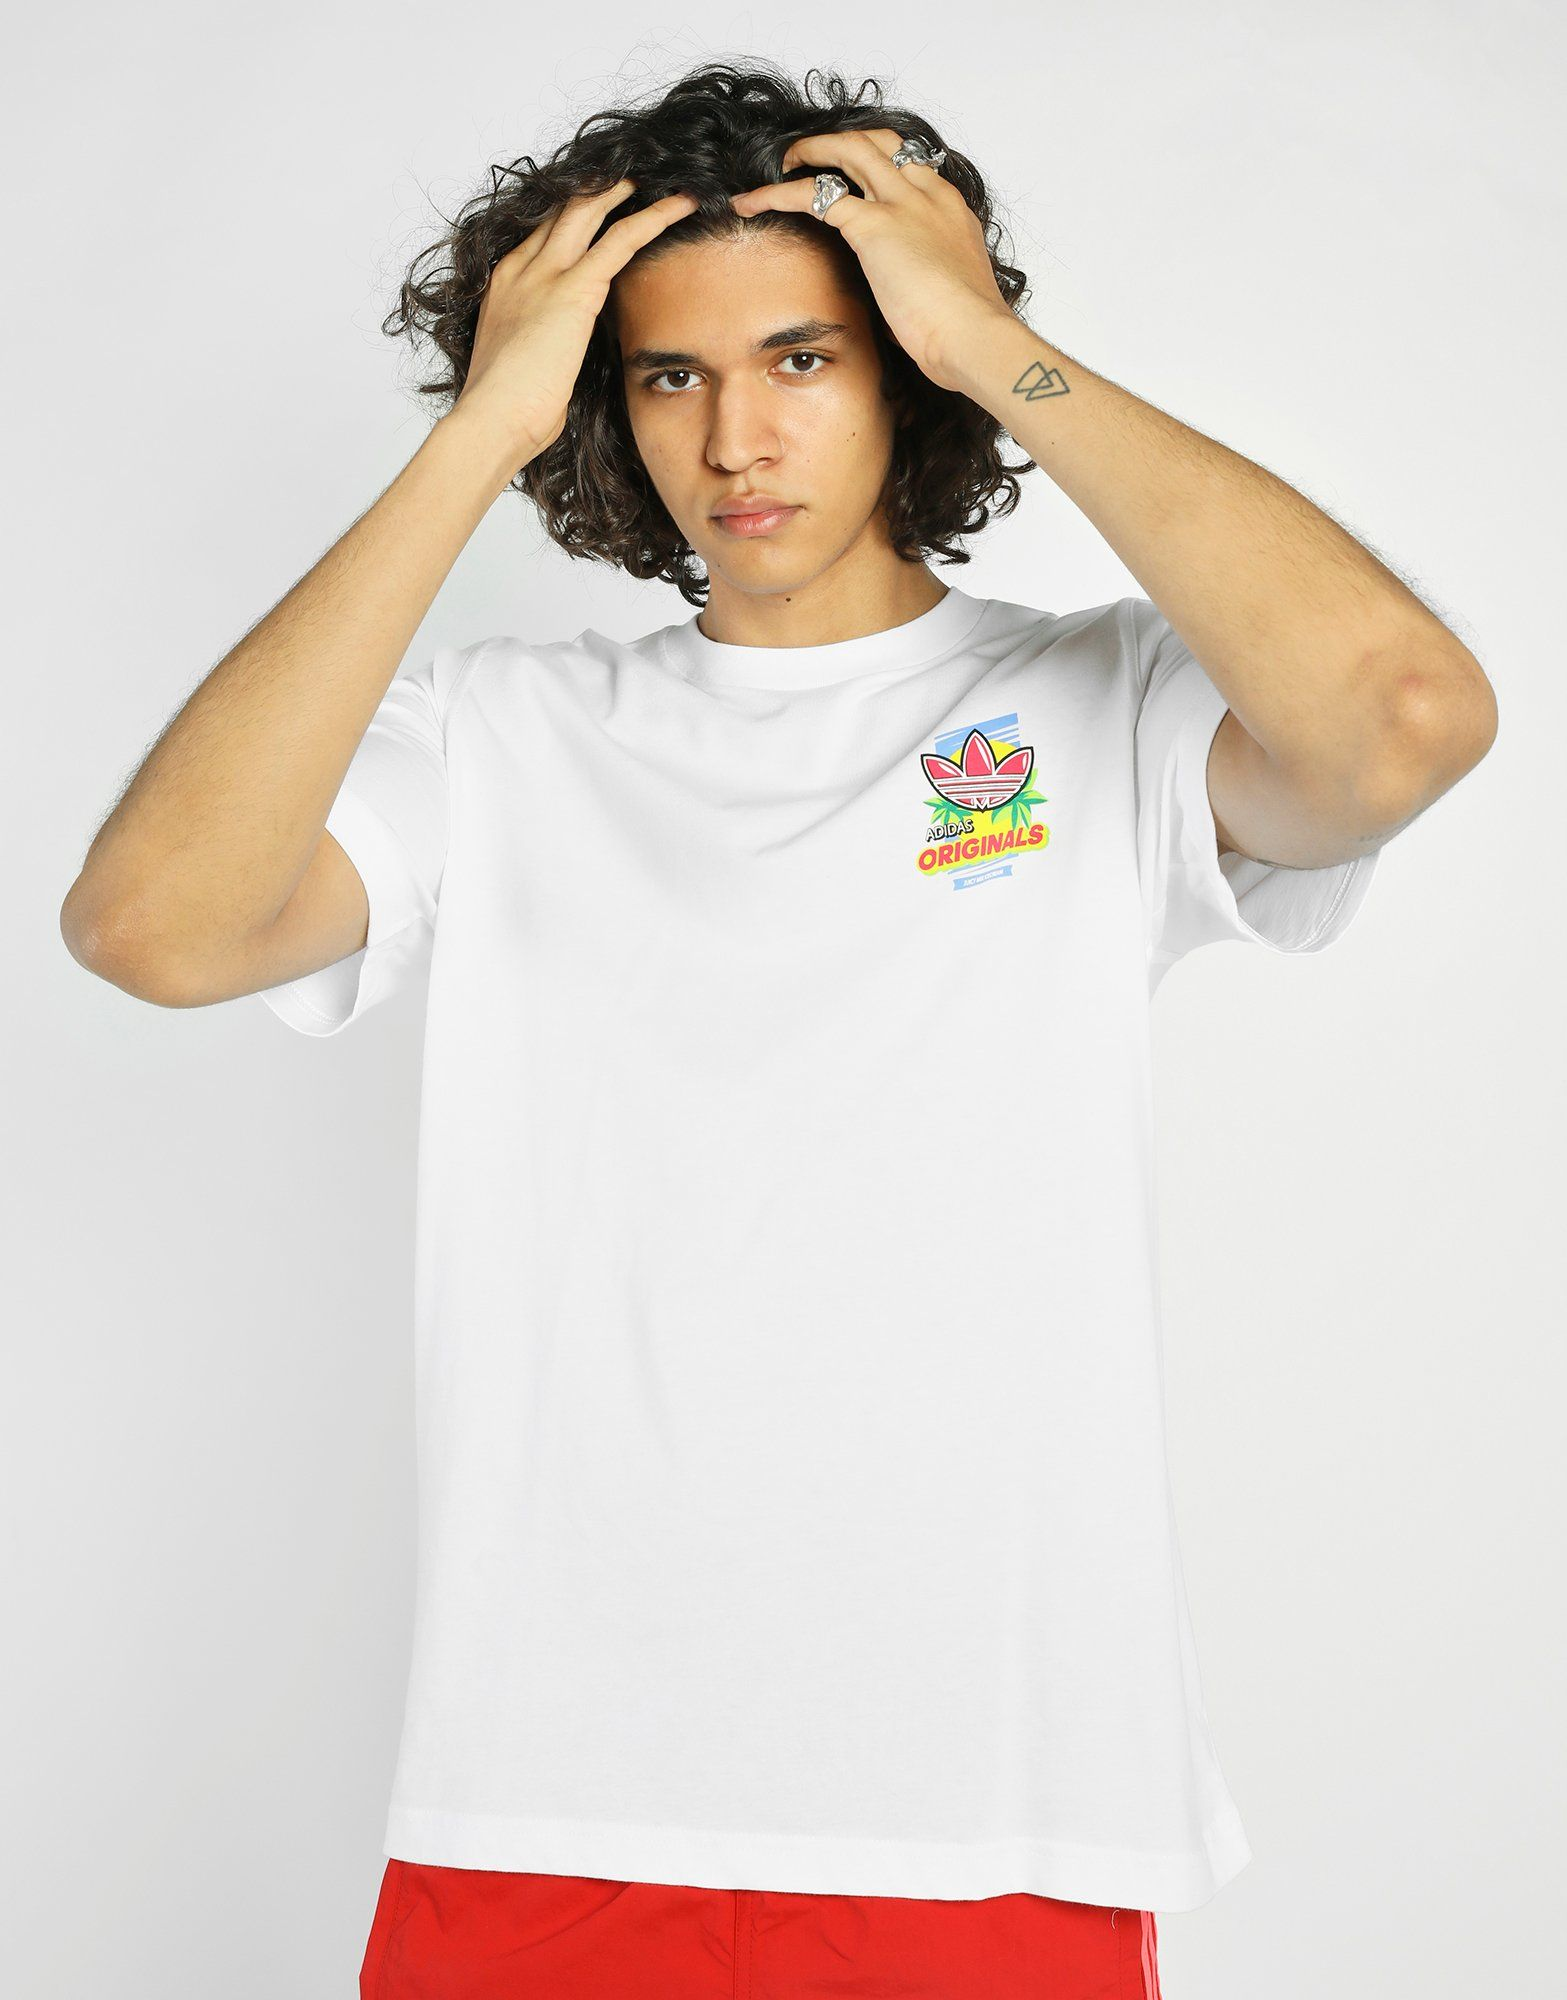 Adidas Originals Bodega Popsicle T Shirt by Adidas Originals